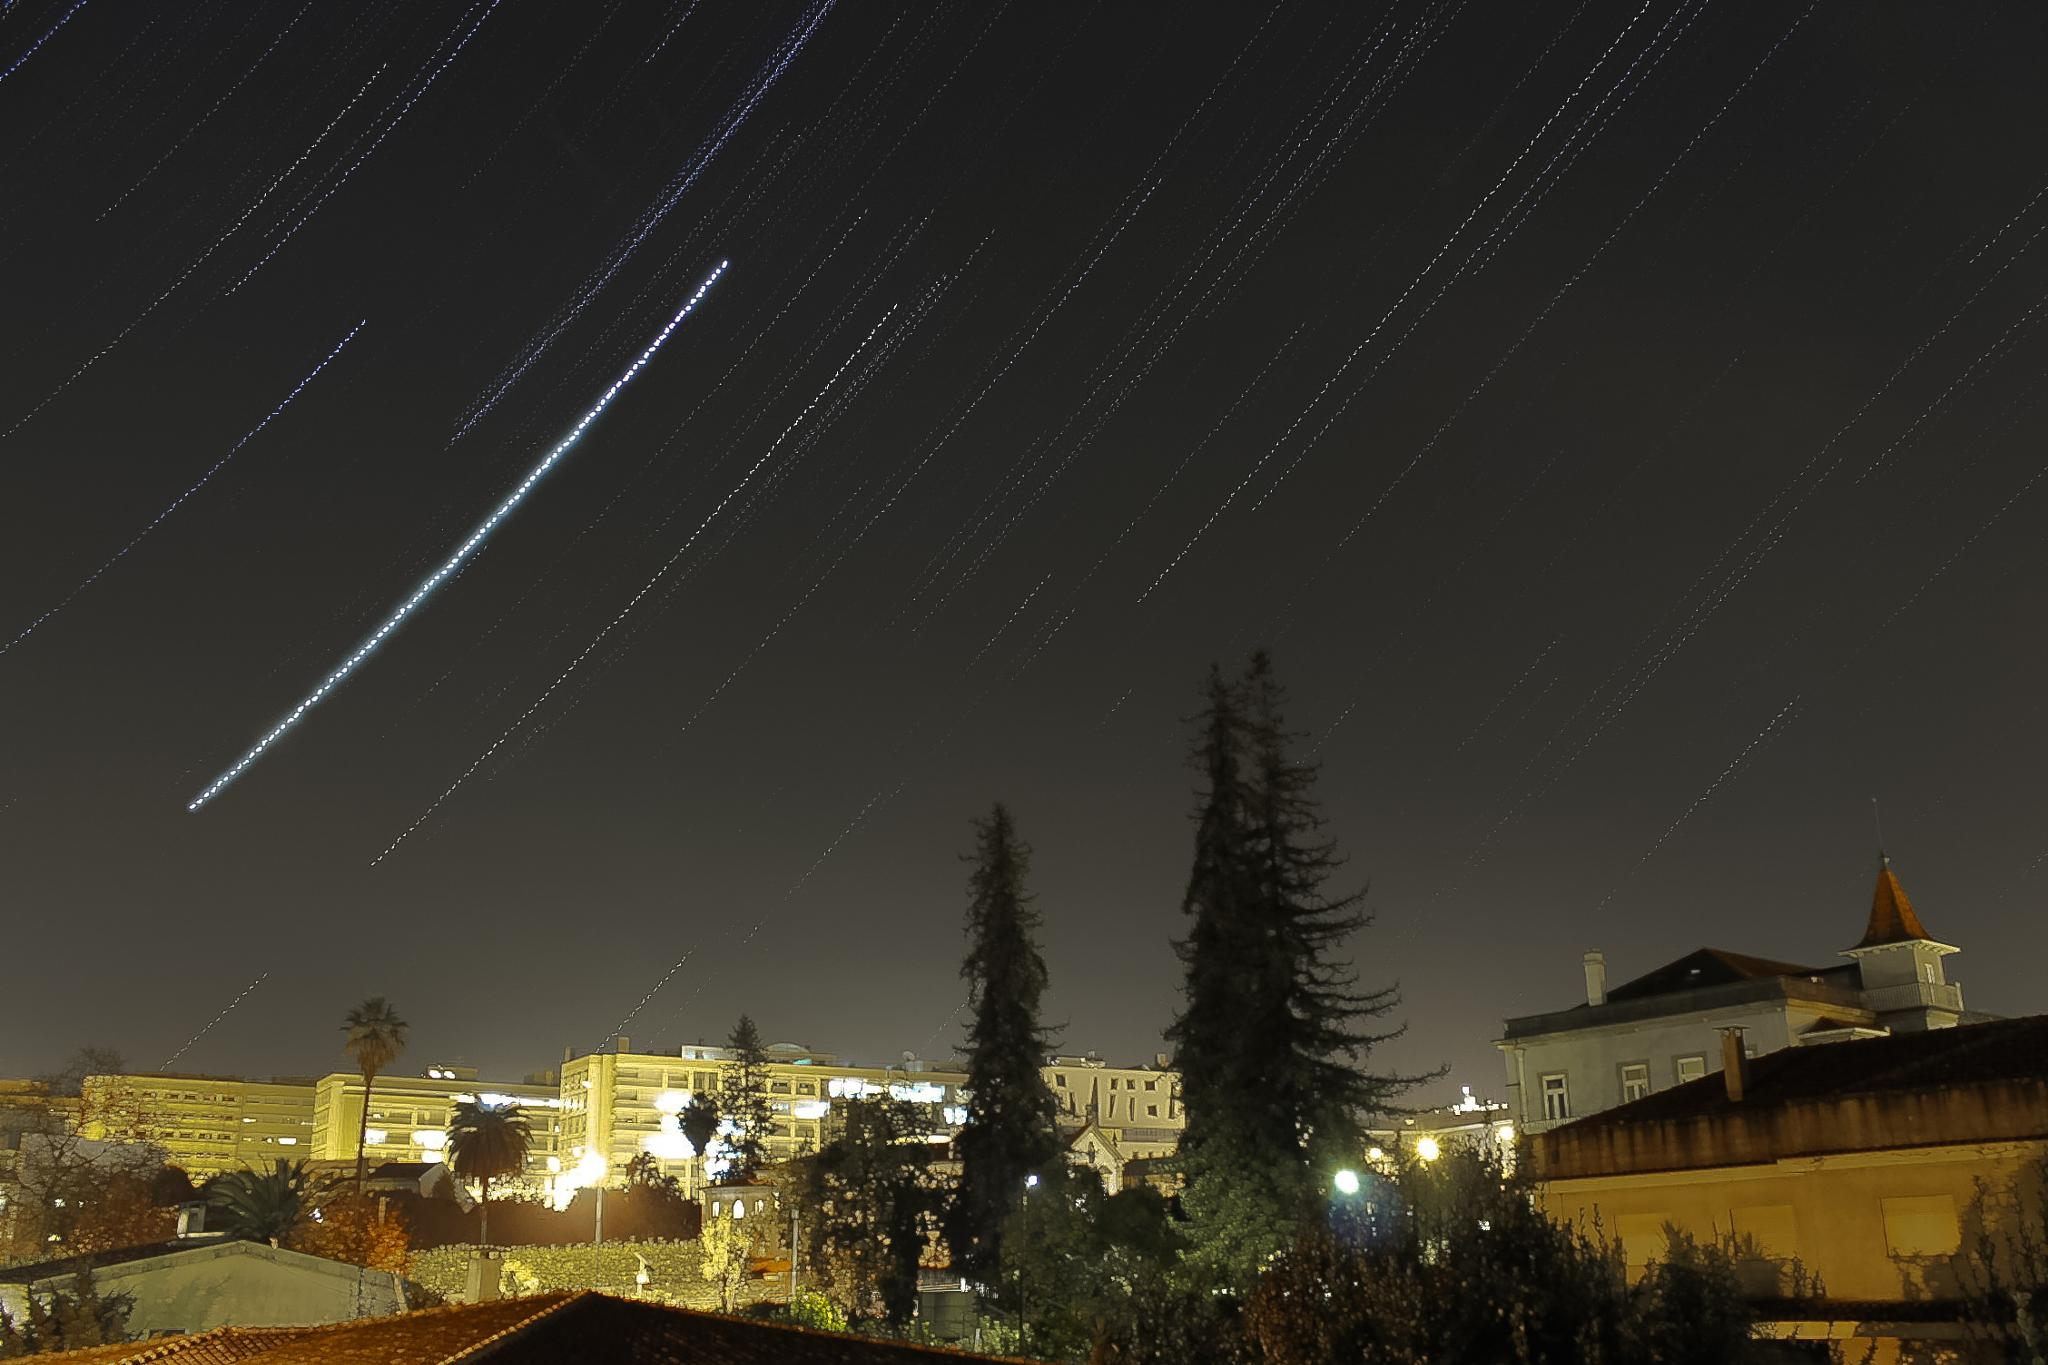 startrails by JORGEpht